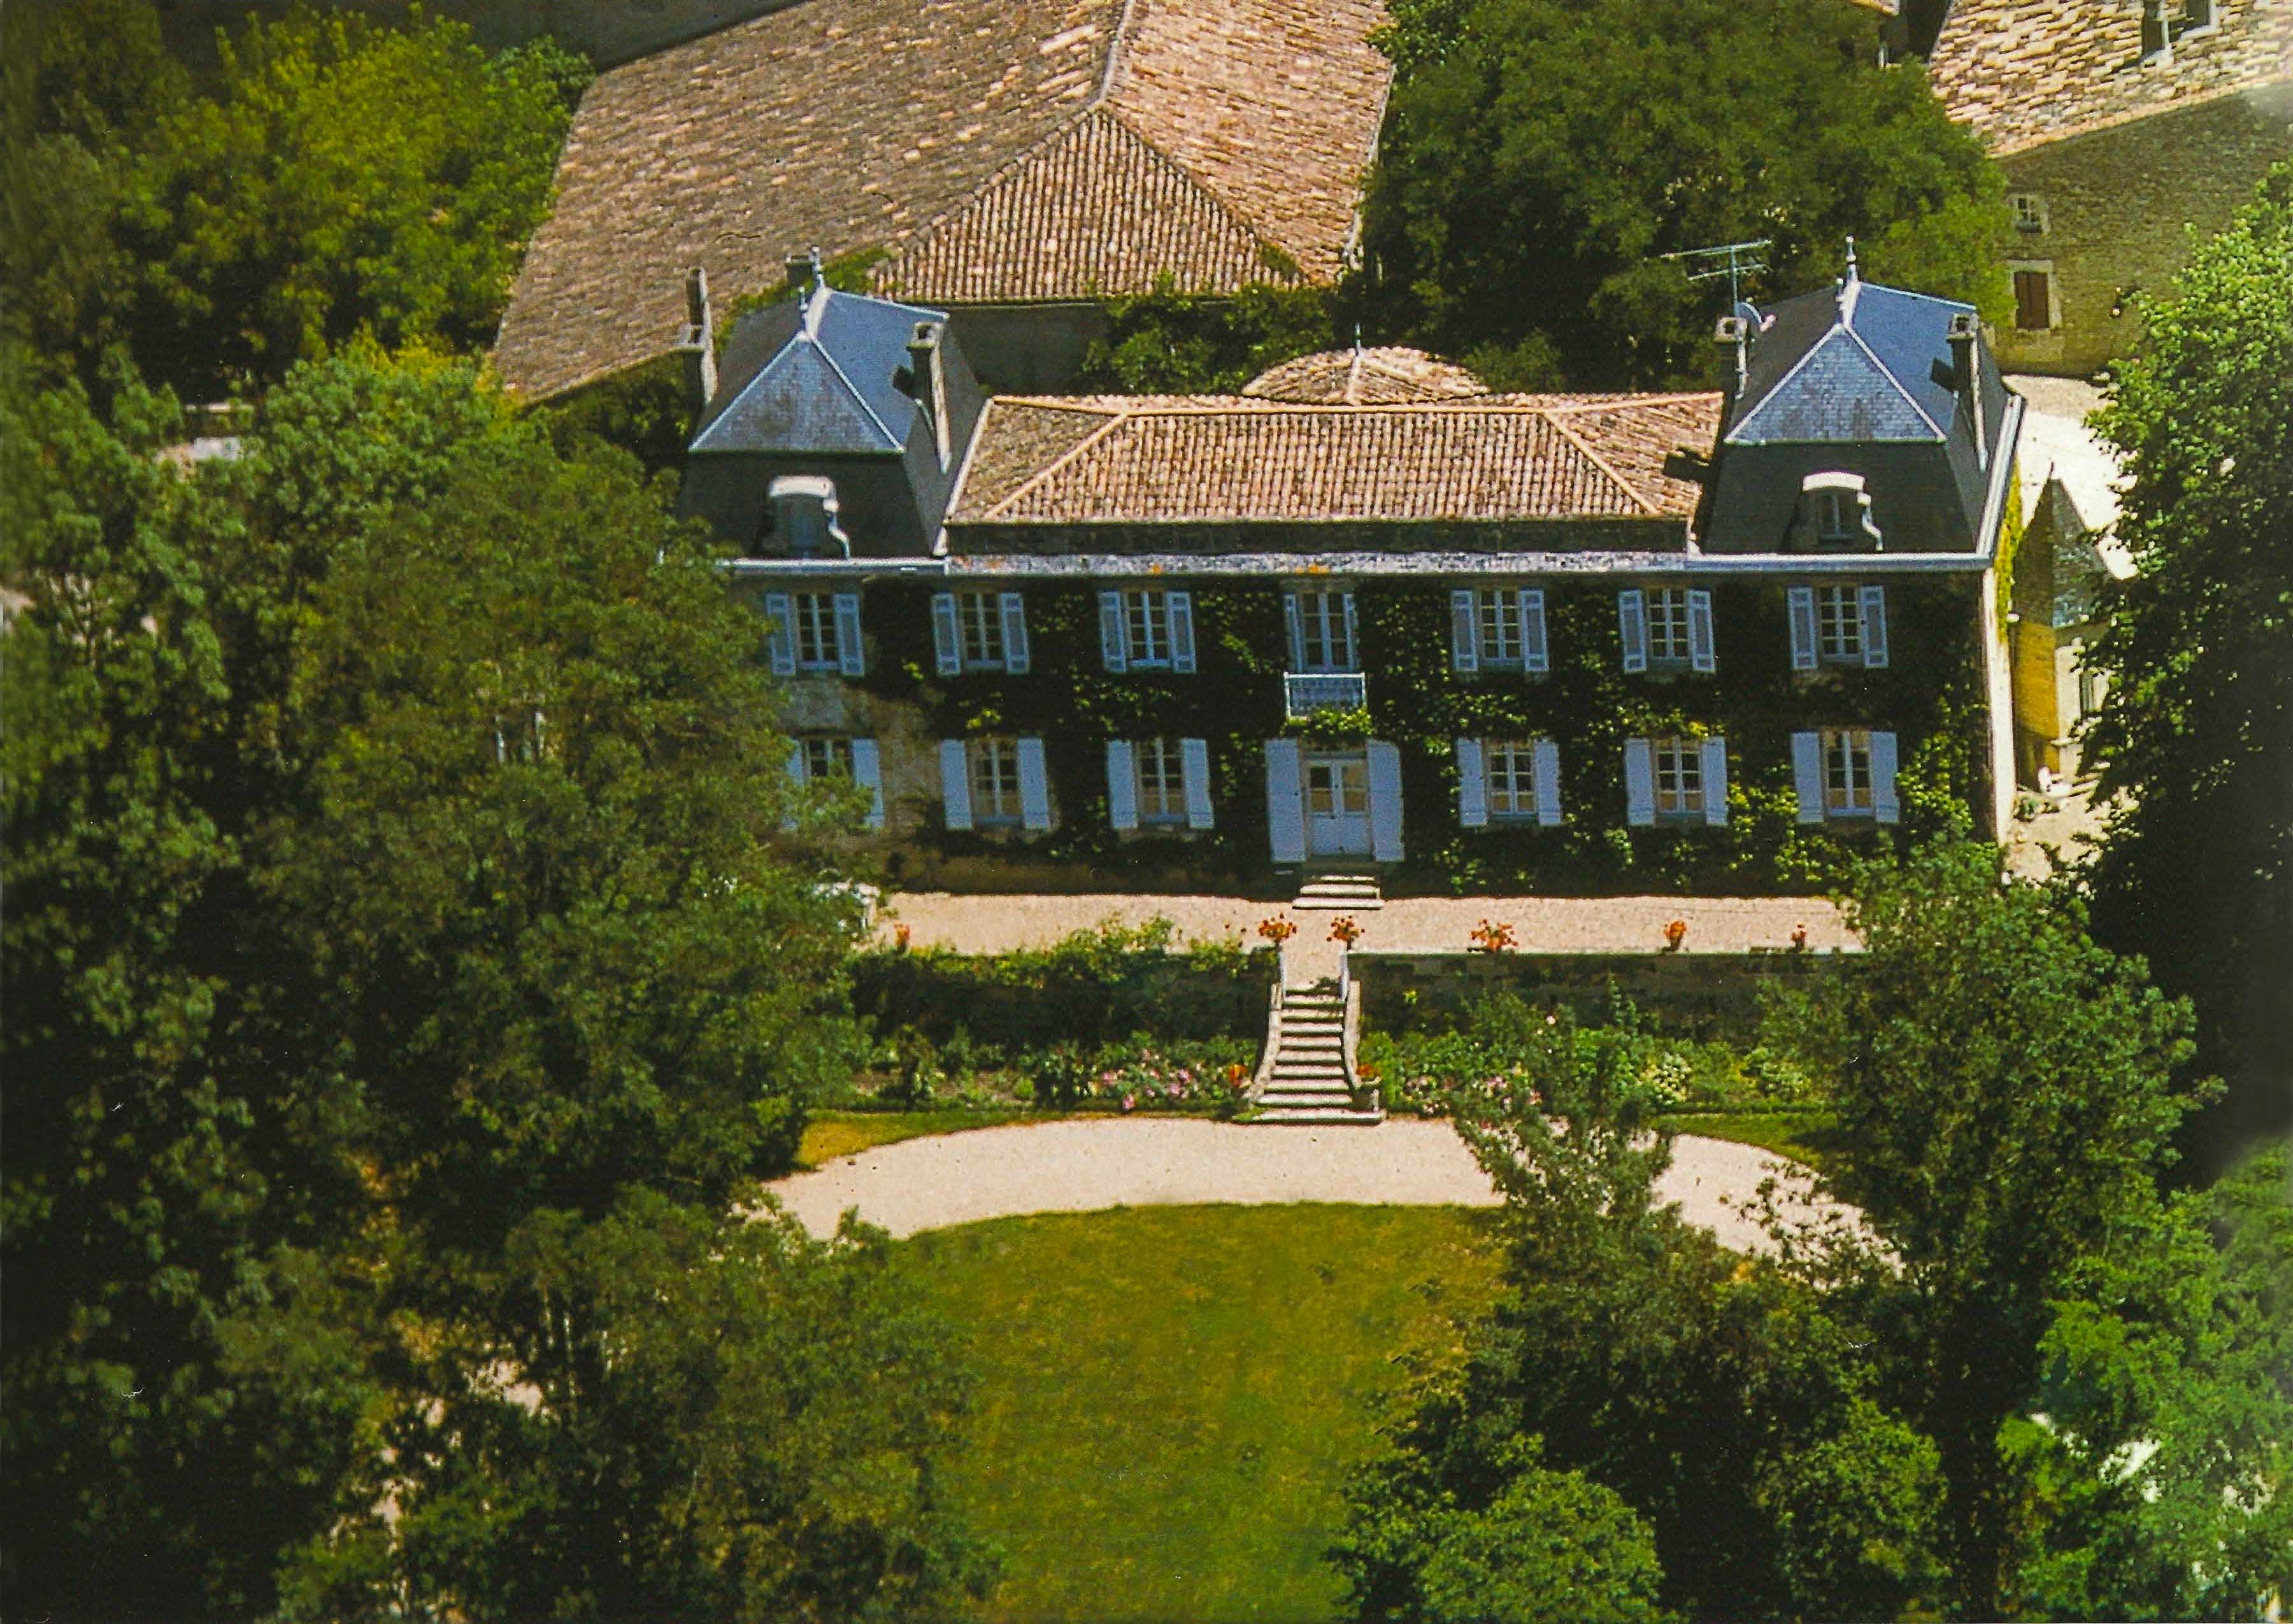 Château La Yotte, an archetypal vineyard estate in the AOC region of Loupiac, recently sold for €1,272,000 (US$1,560,492). The property includes a beautiful ivy-clad main residence, several dwellings, resort-style amenities, agricultural facilities, a wine-tasting area, and 11 hectares (27 acres) of land, ready for the new owner to replant.